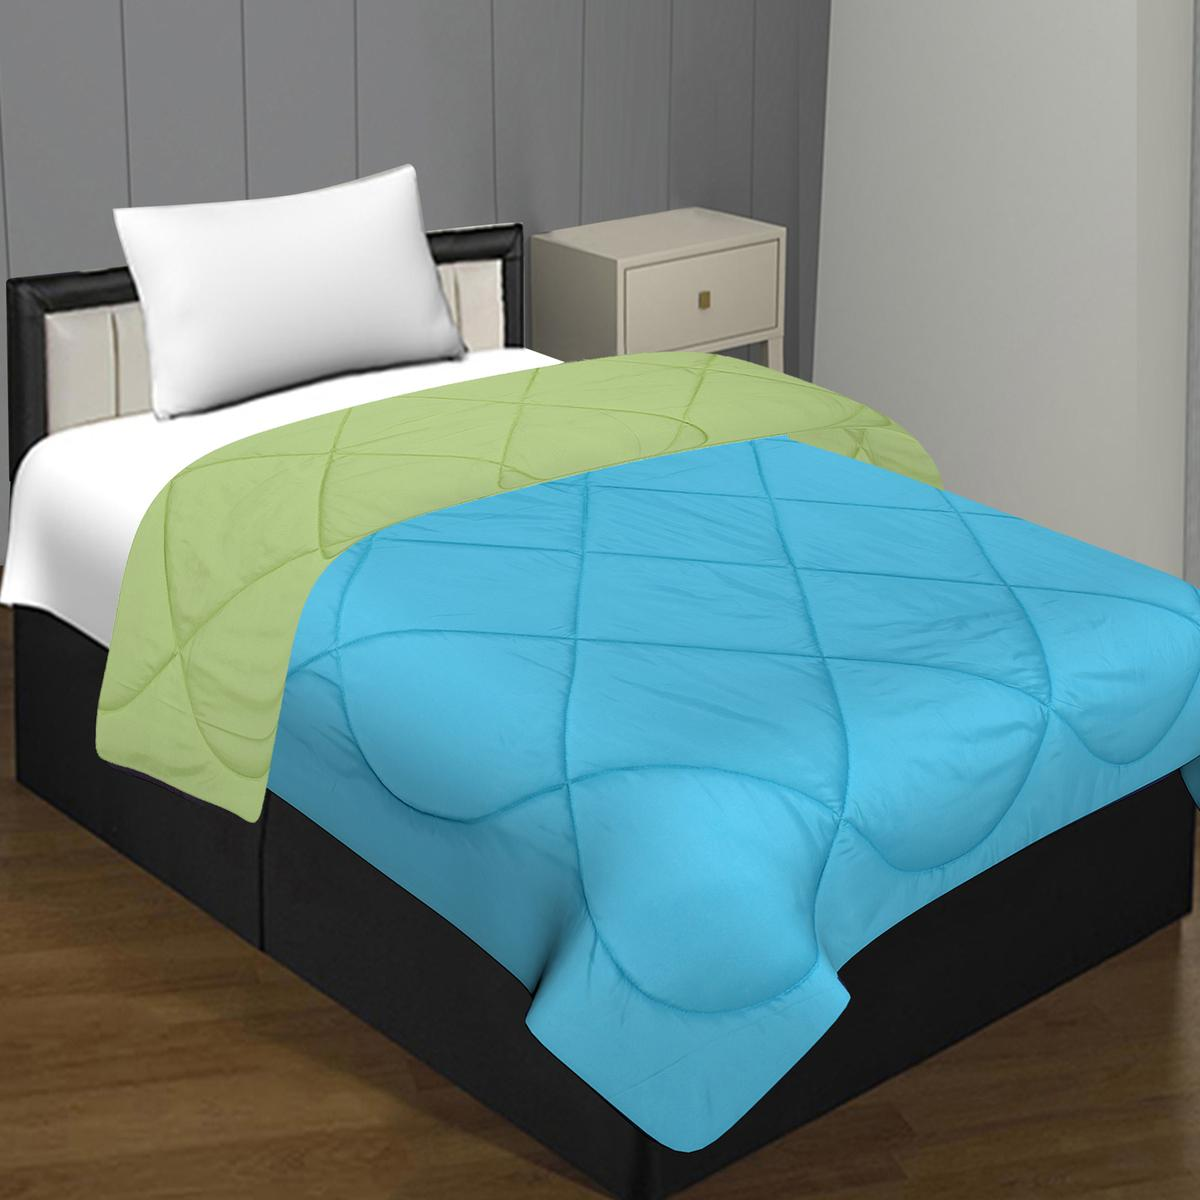 Buy Pretty Aqua Green Colored Solid Poly Cotton Single Bed Comforter For Women S Wear Online India Best Prices Affordable Prices Best Price Online Reviews Peachmode